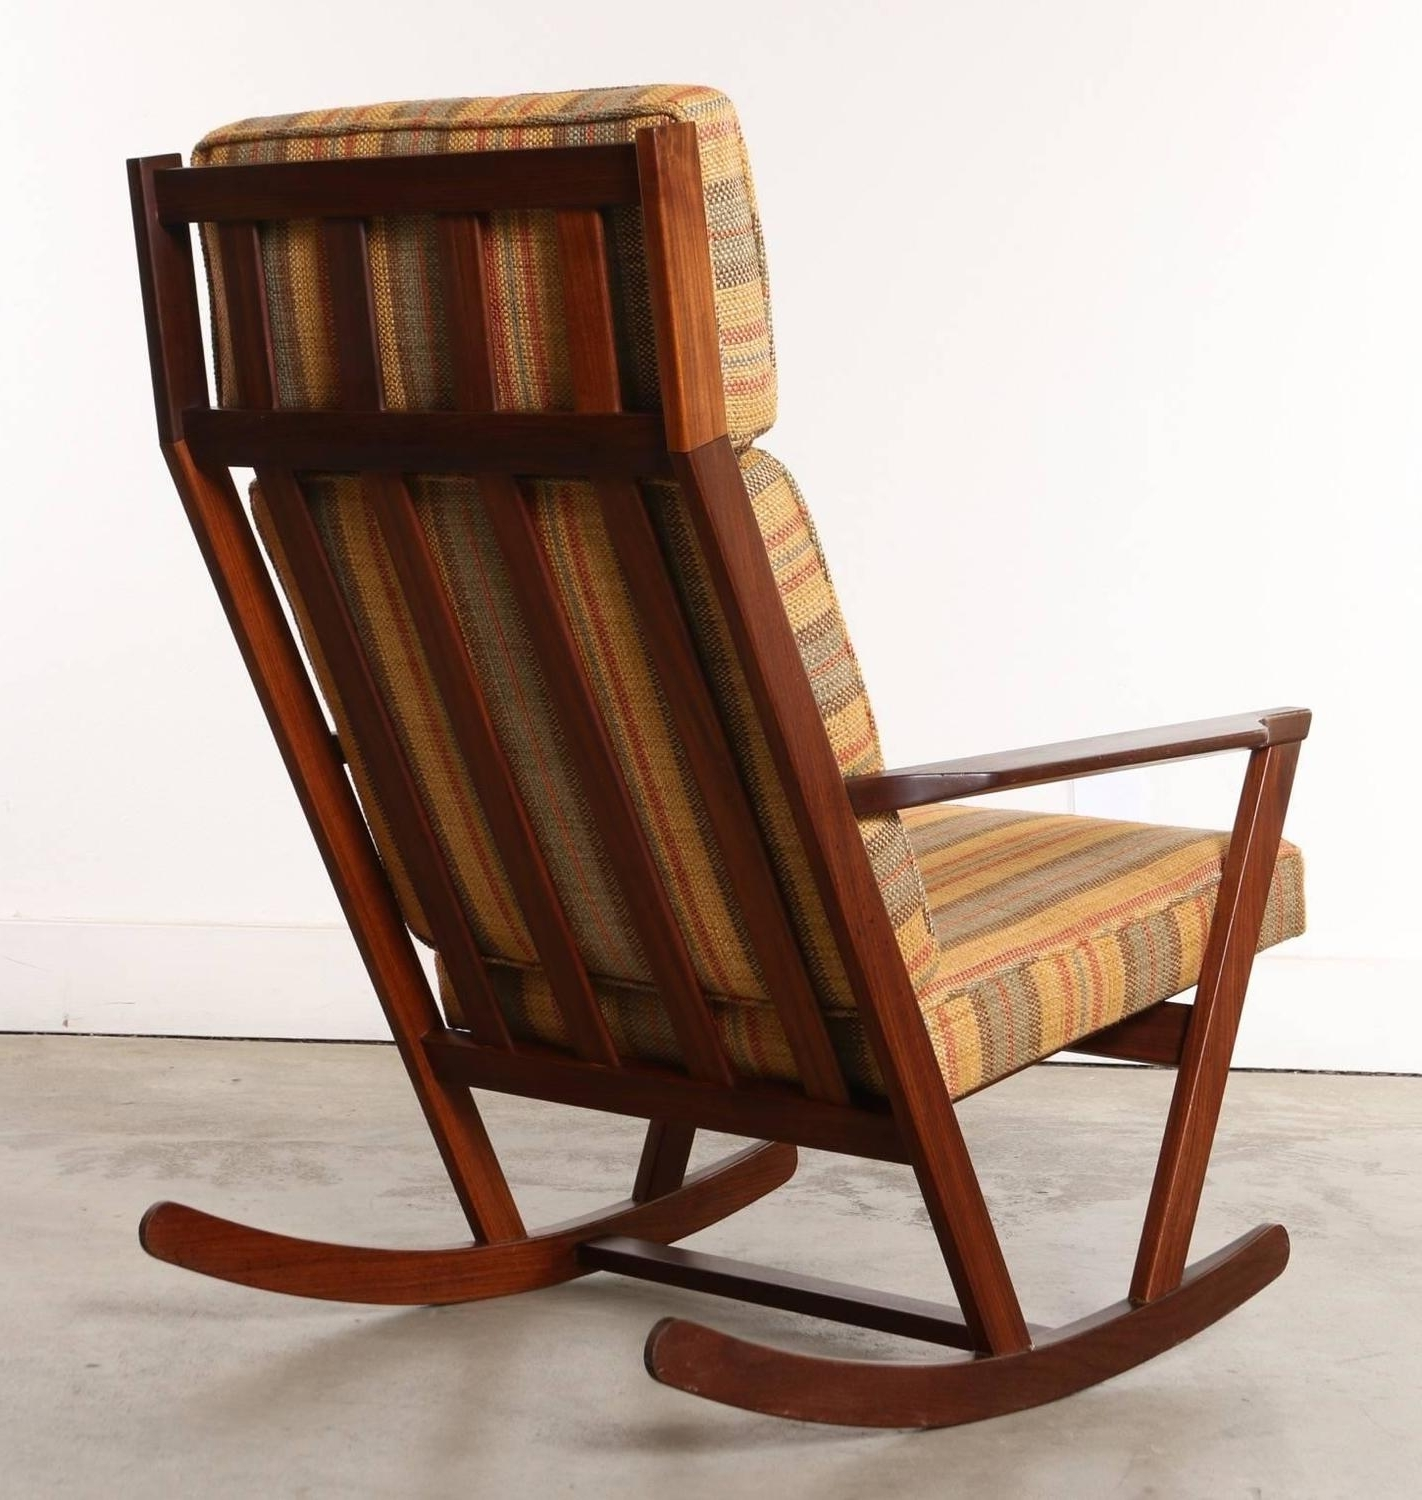 Danish Modern Wooden Rocking Chair With Cushions Designed, Danish Regarding Popular Rocking Chairs With Cushions (View 18 of 20)